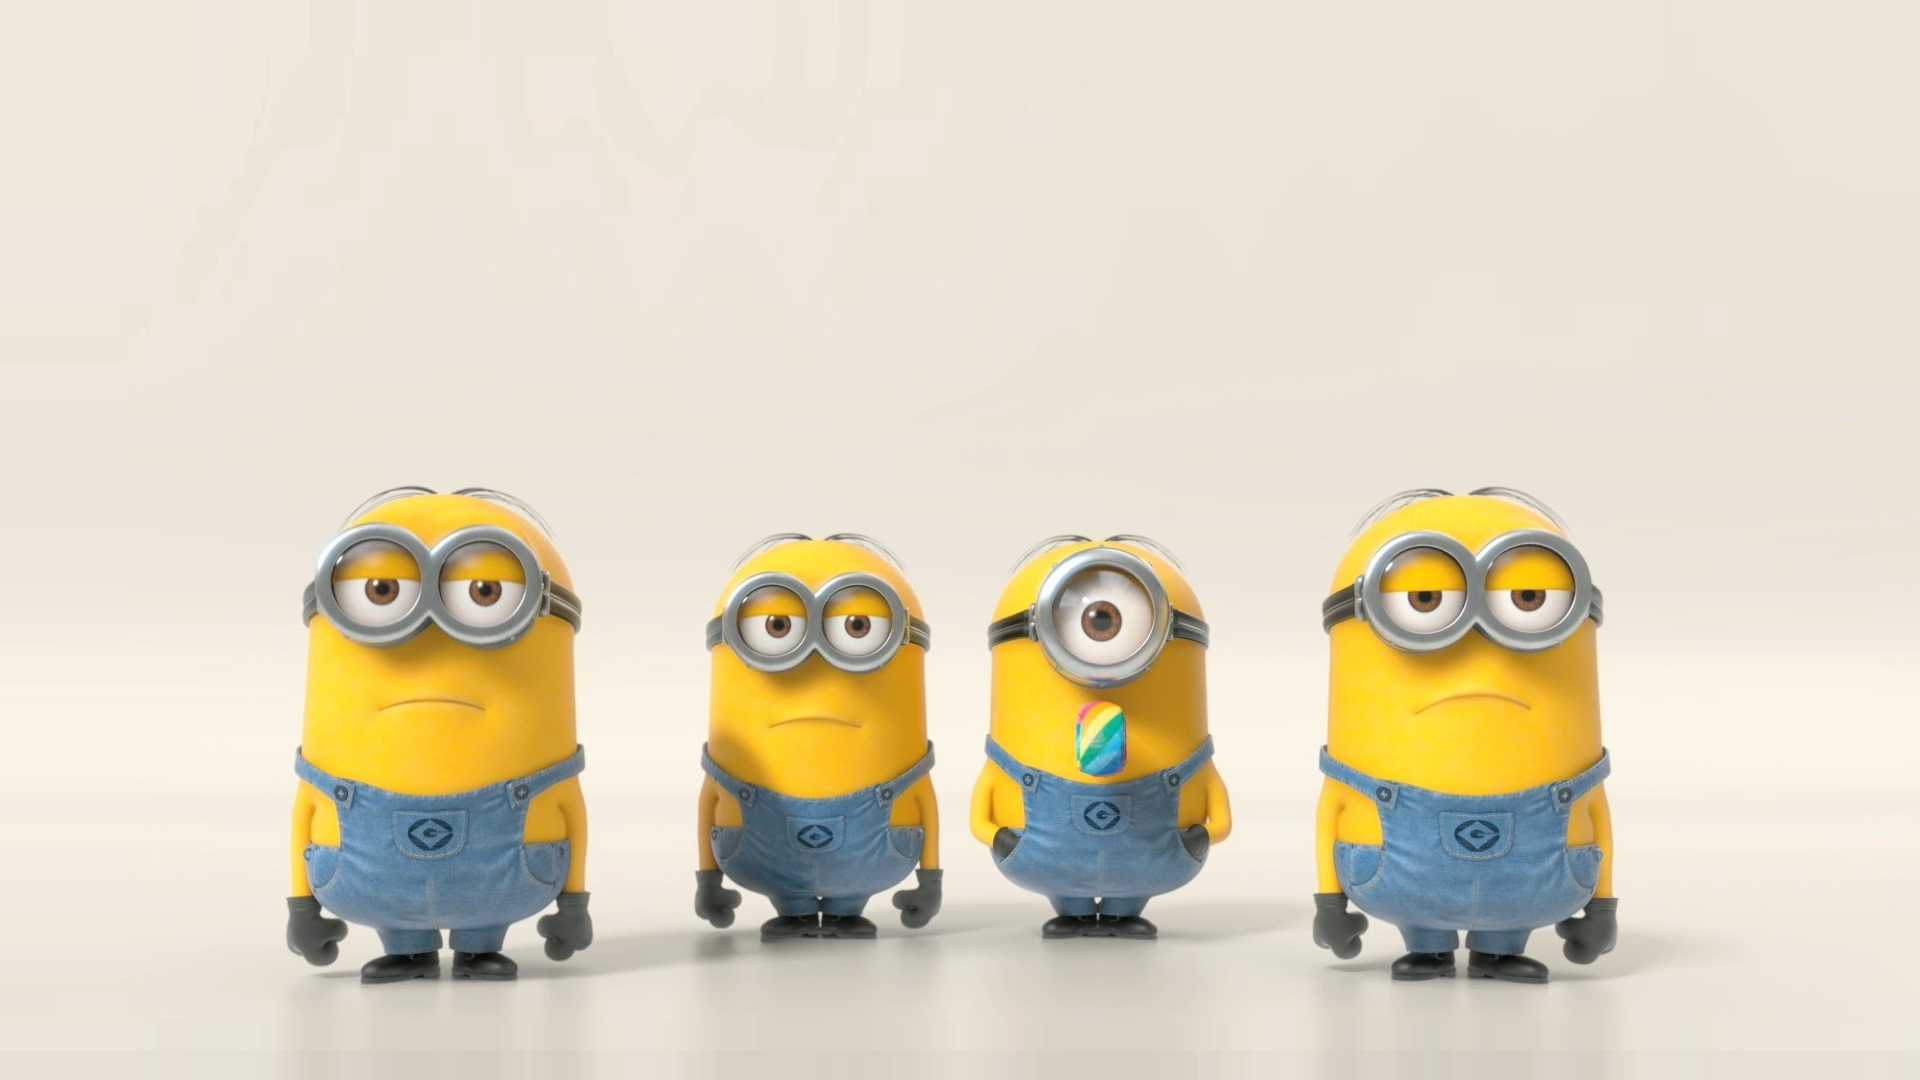 Awesome-minions-backgrounds-hd-free-download-wallpaper-wpc9002469